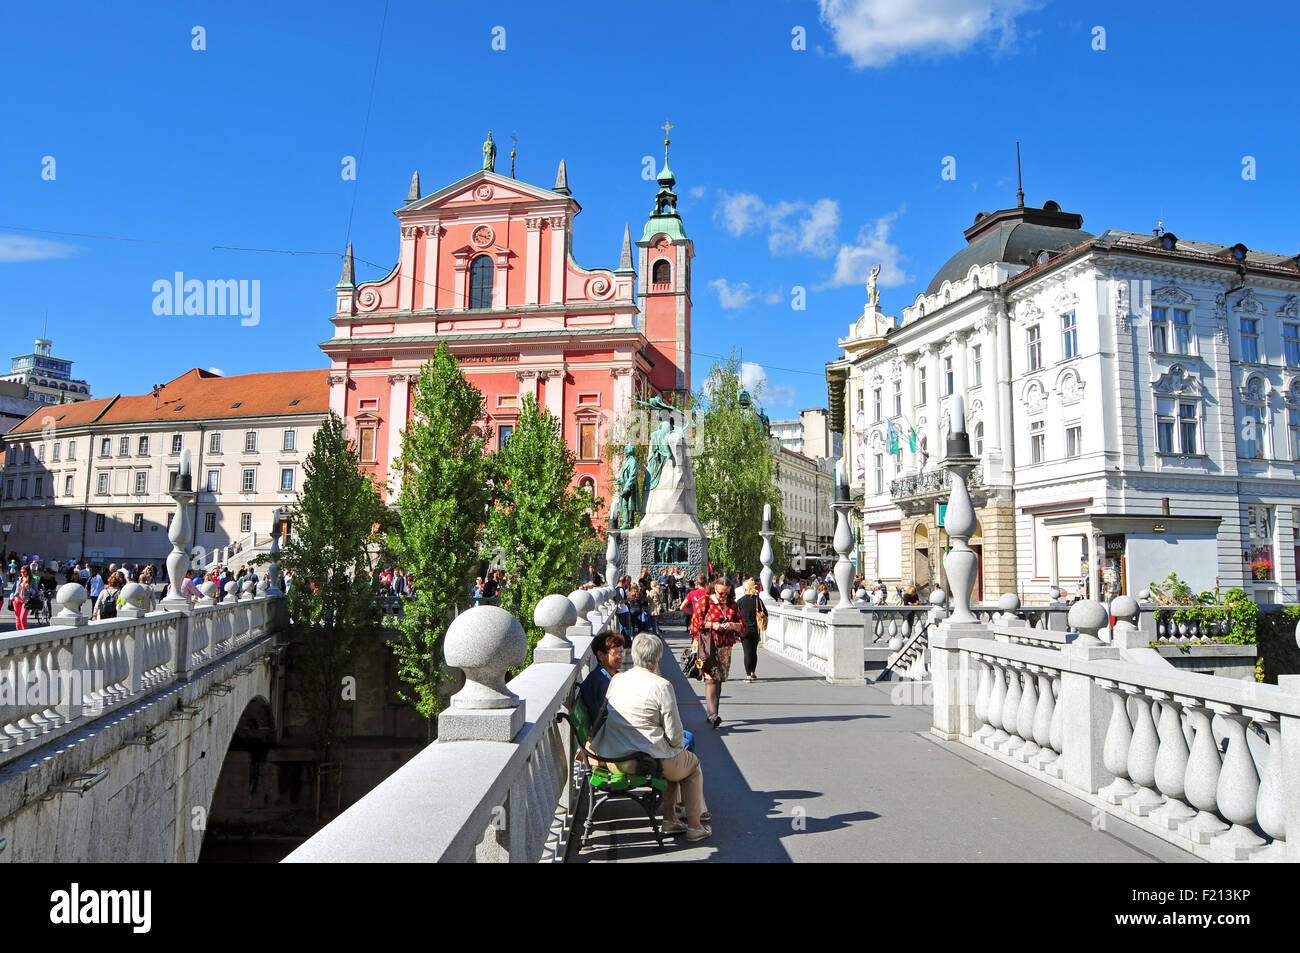 Ljubljana, Slovenia - September 7, 2015 - St. Francis church and triple bridge - Stock Image